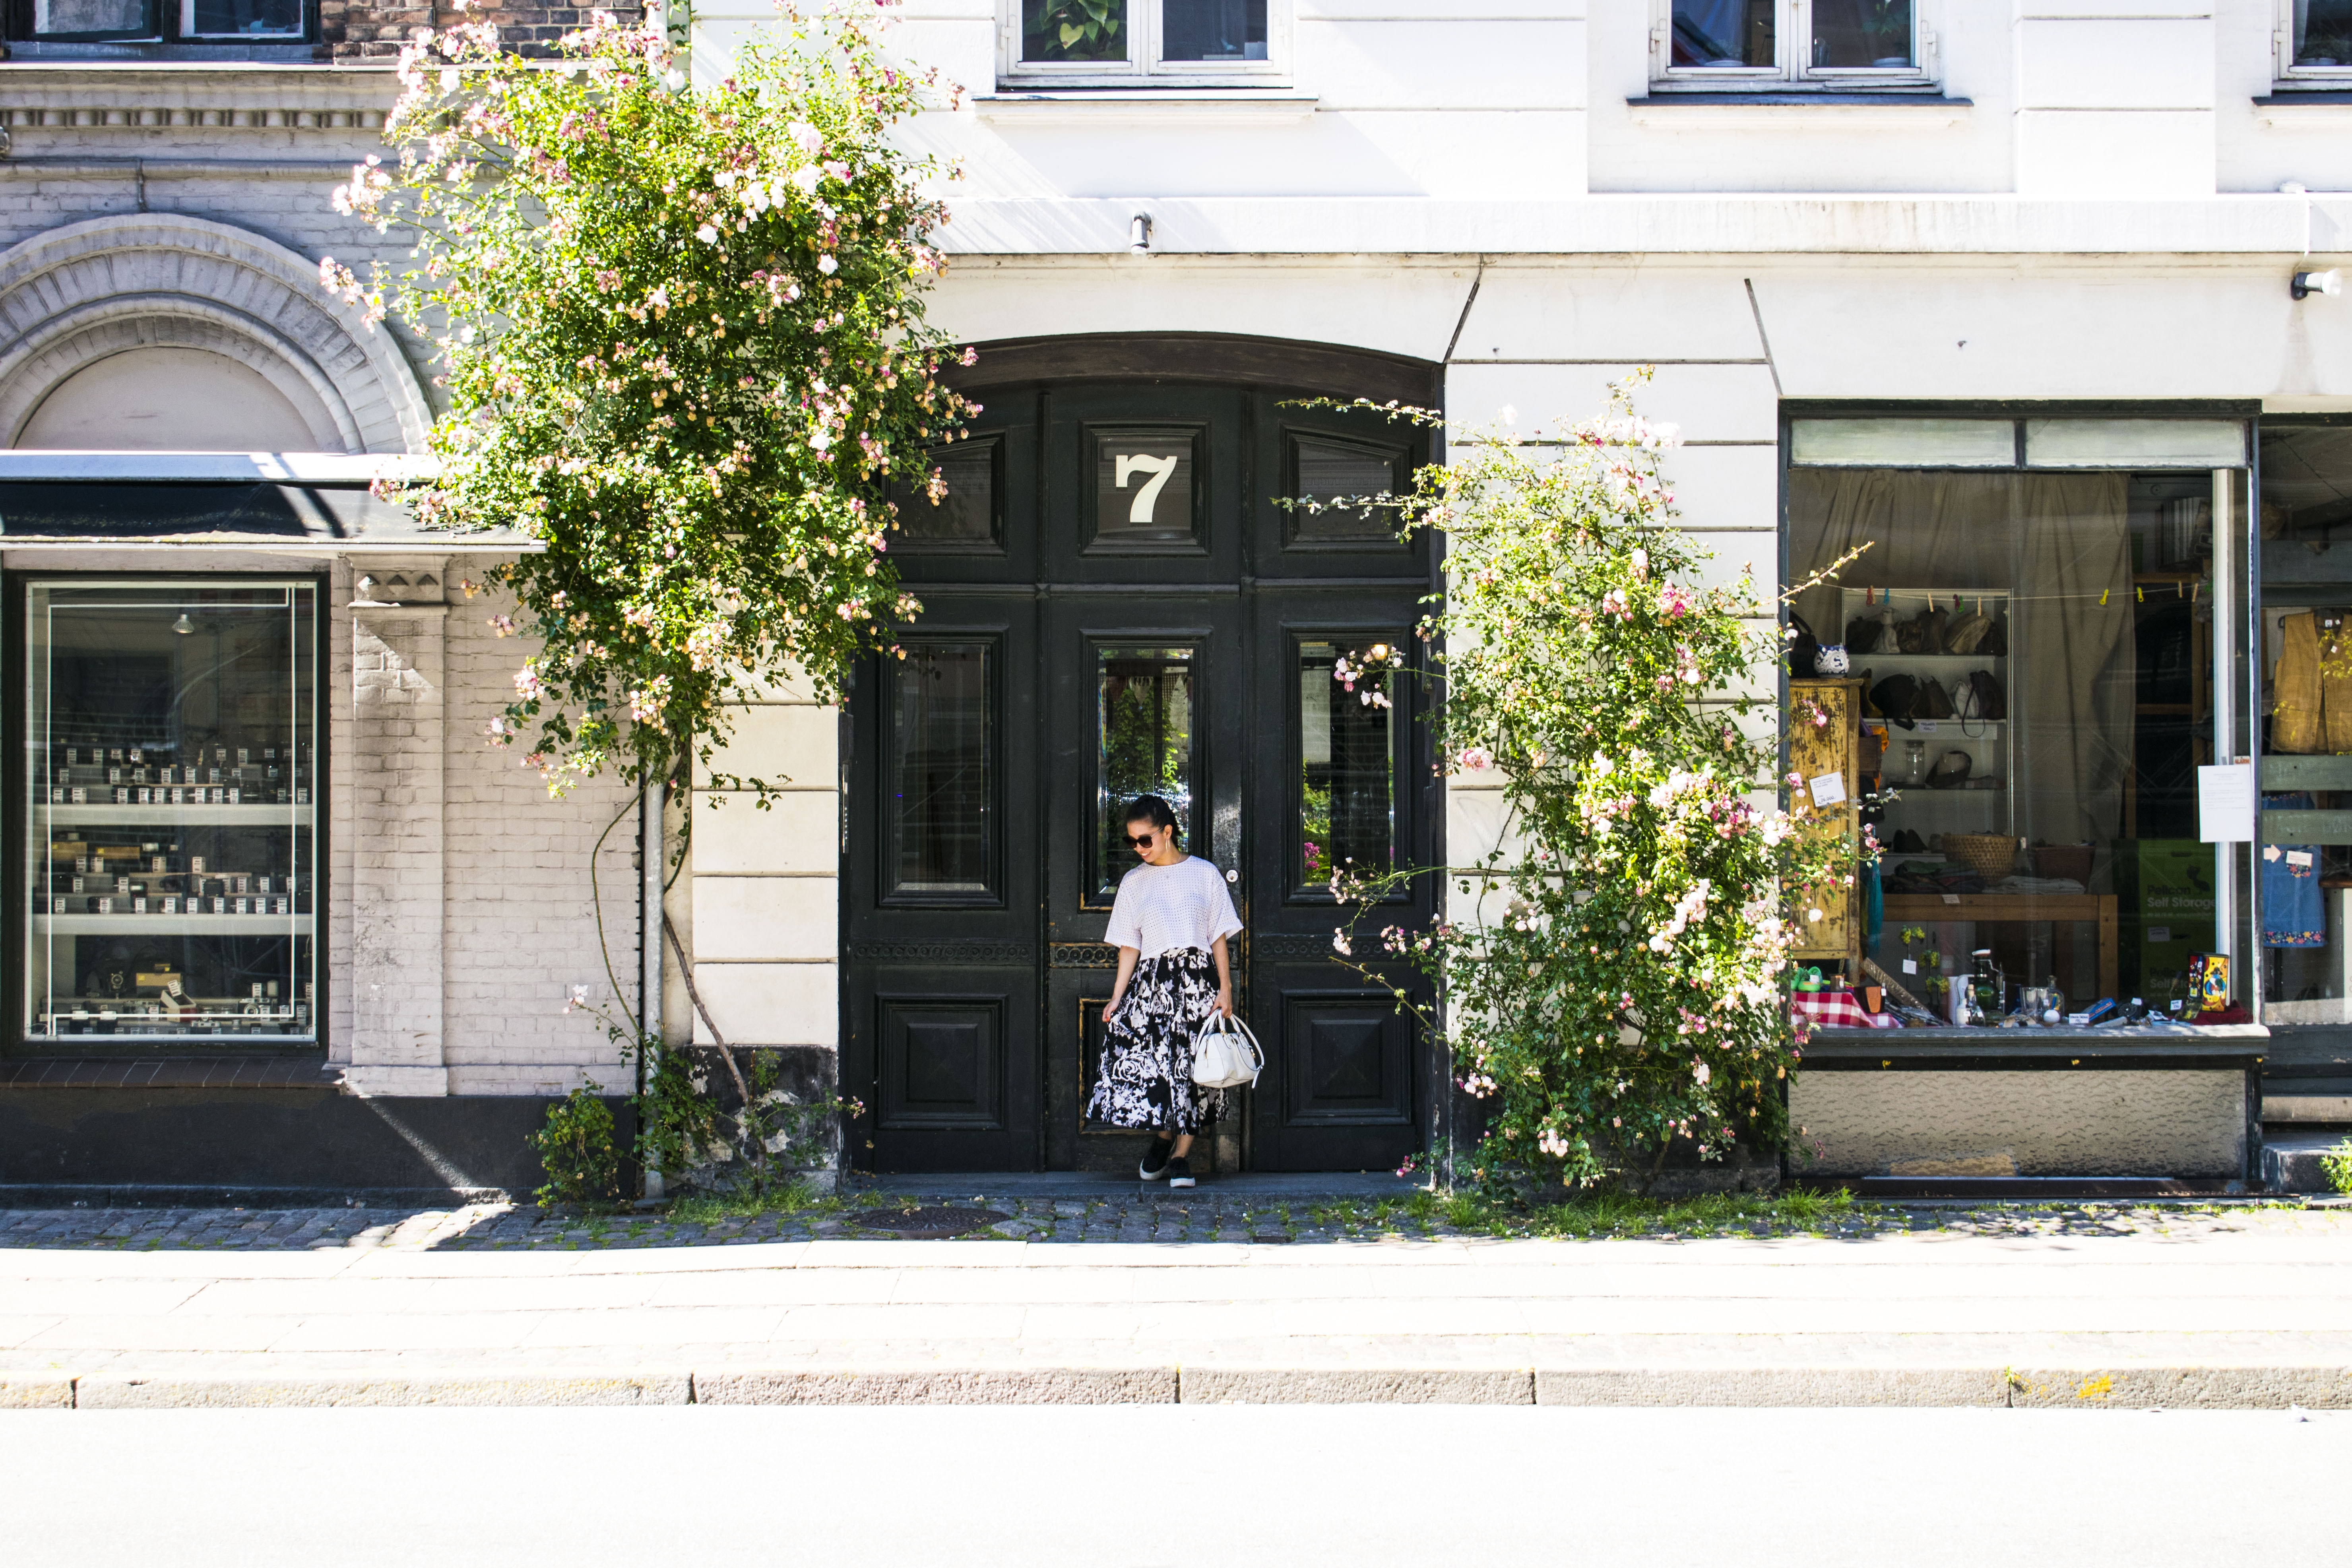 woman carrying bag white standing in front of door during daytime